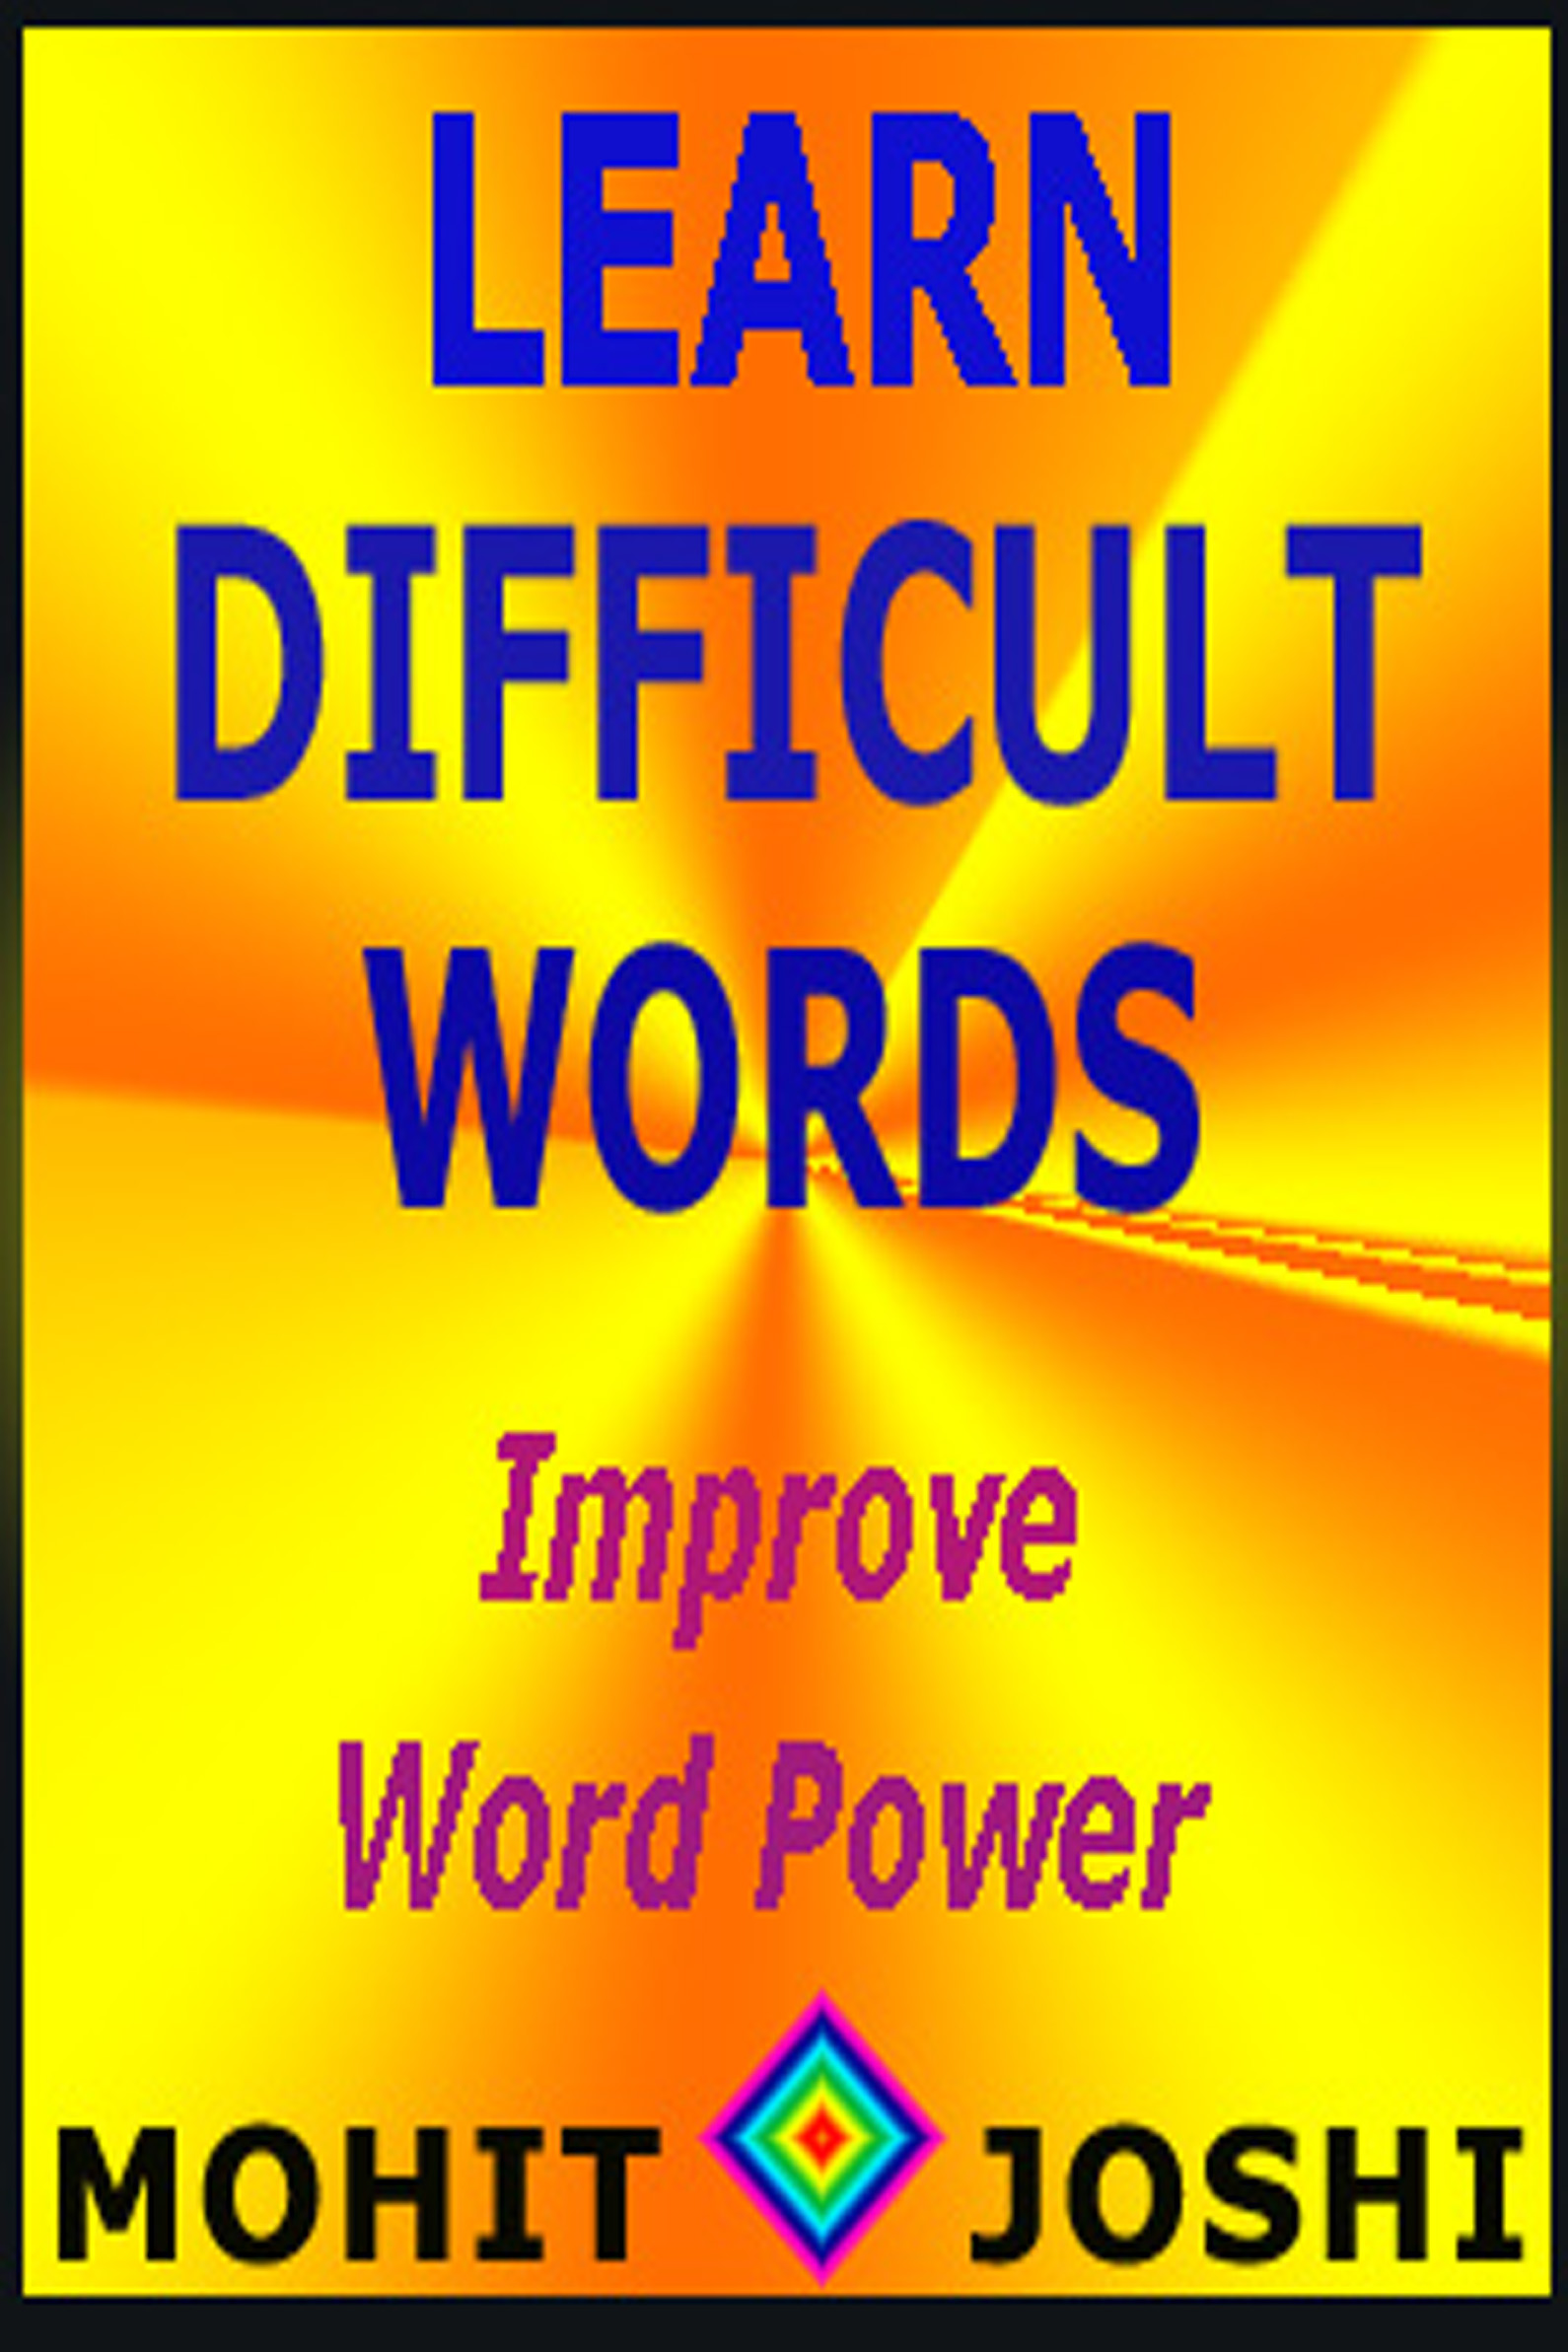 mohitjoshi.com, learn difficult words